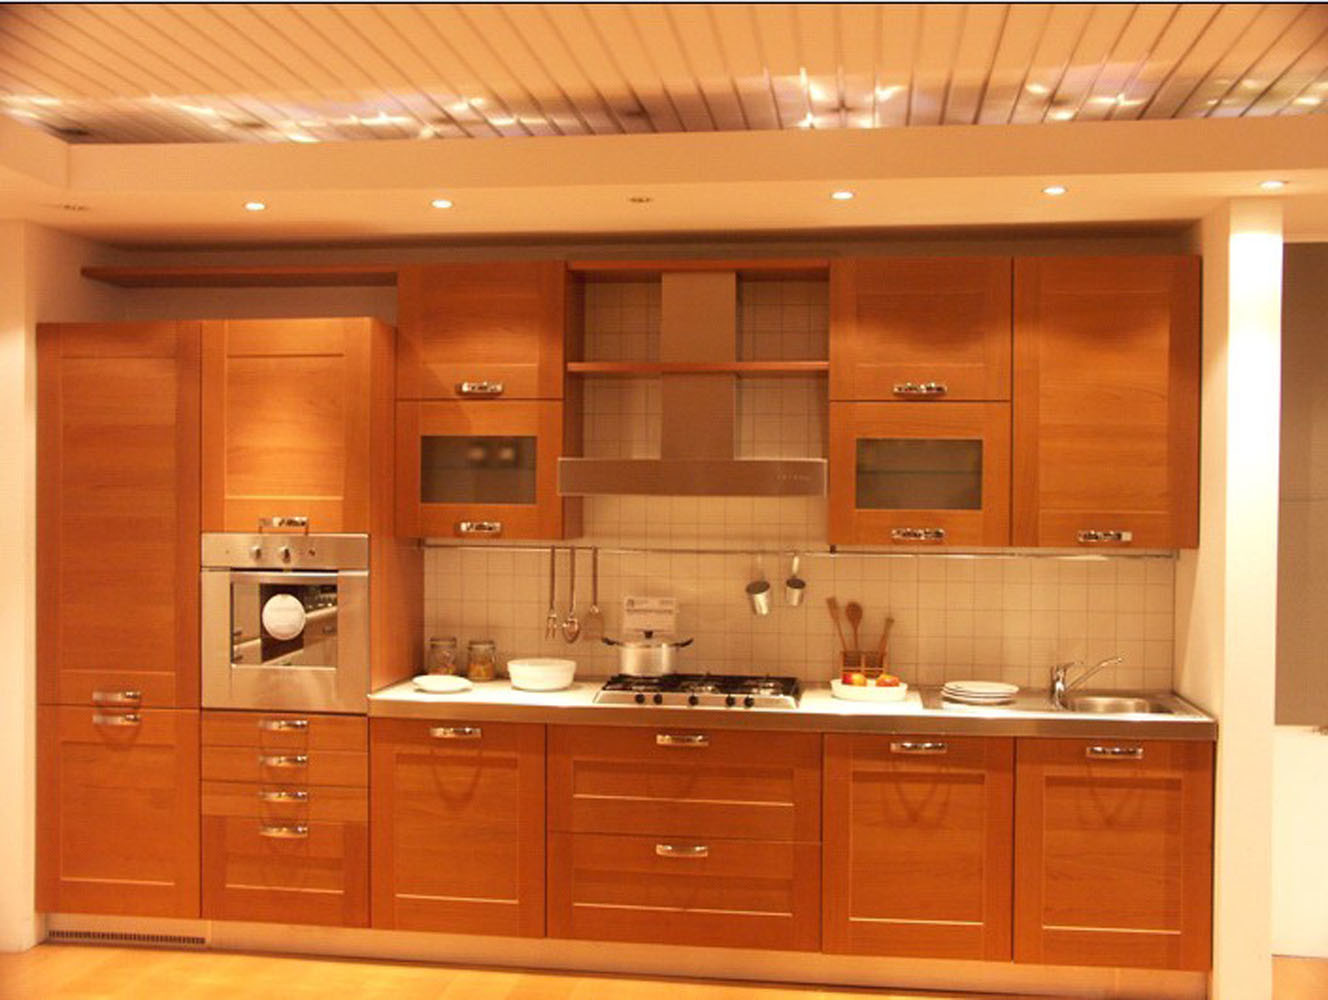 China hard maple shaker style kitchen cabinets in full for Maple kitchen cabinets